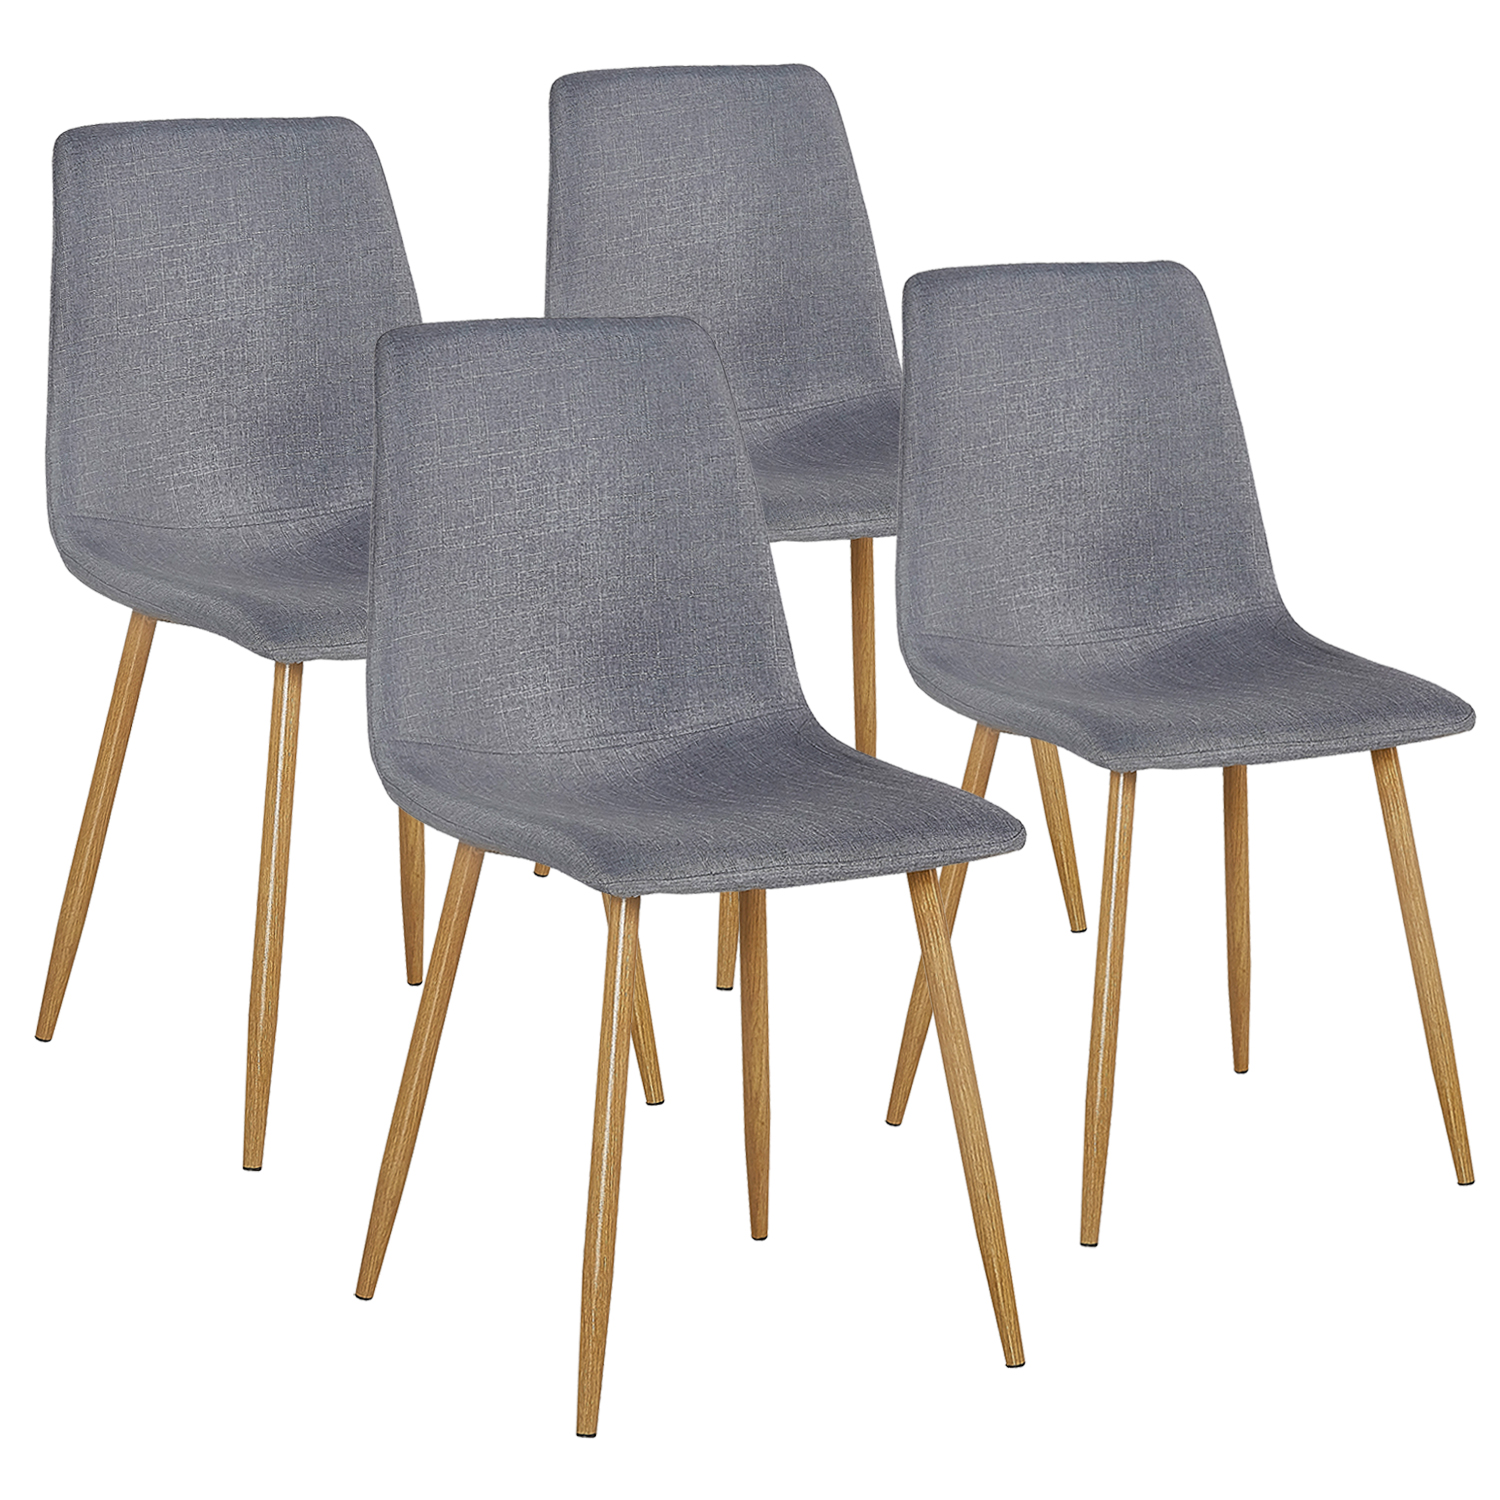 Vecelo Set of 4 Eames Dining Side Chairs,Modern Cushion Back Chairs Wooden Legs,Gray